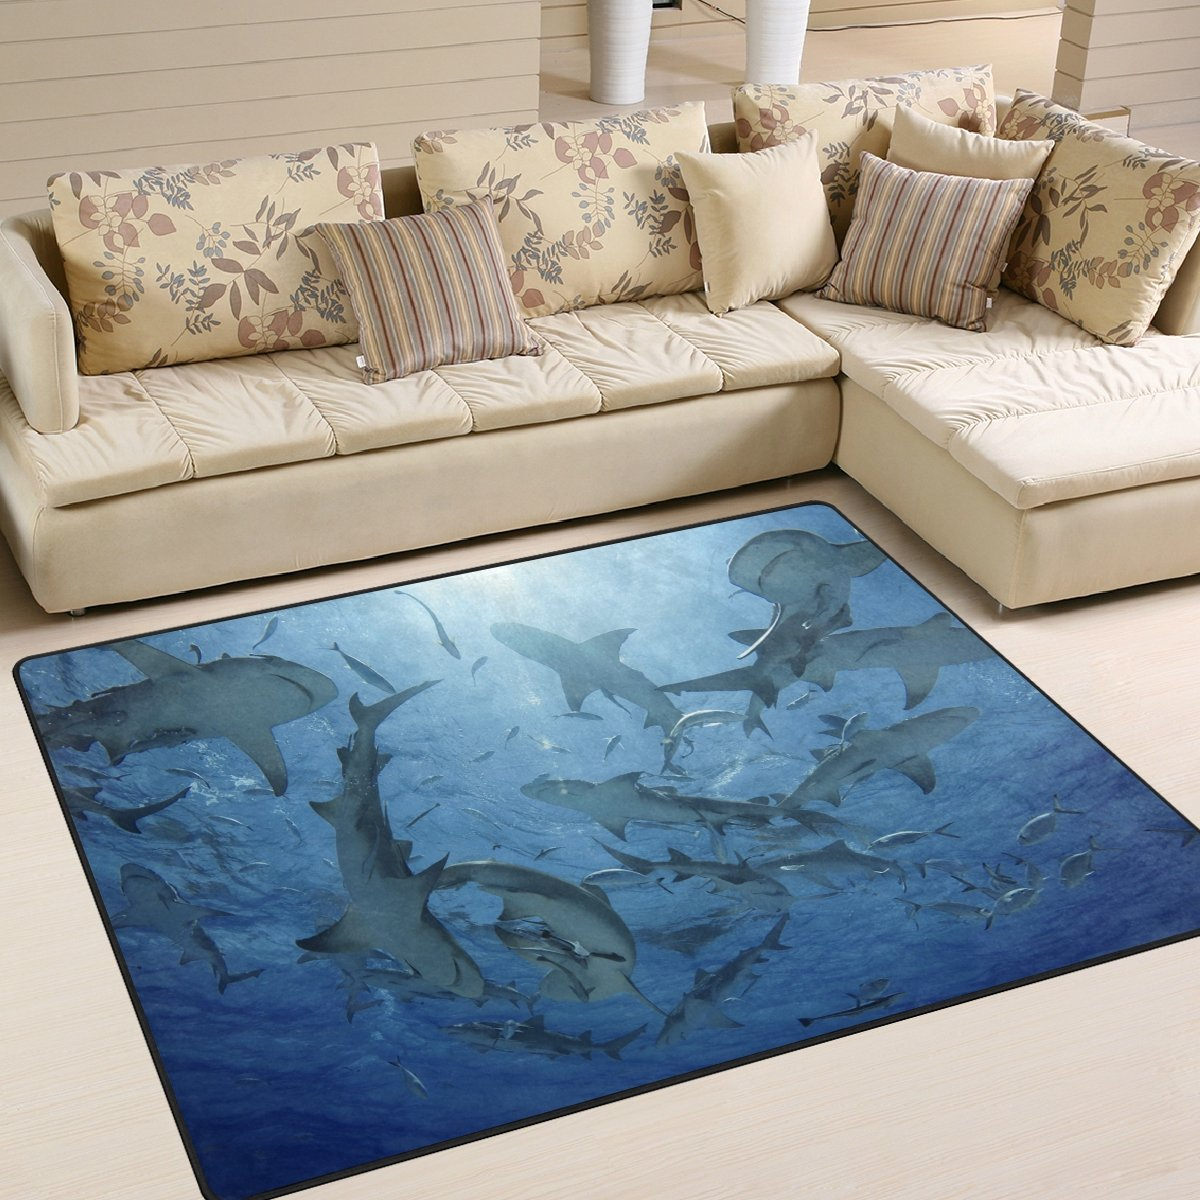 ALAZA Underwater World Funny Shark Area Rug Rugs for Living Room Bedroom 7' x 5'